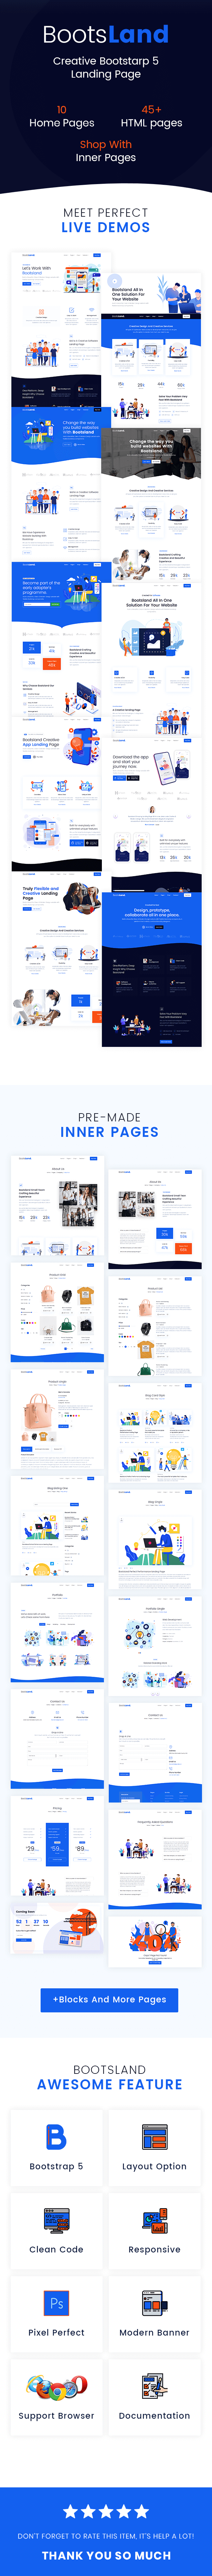 Bootsland - Creative Bootstrap 4 Landing Page - 3